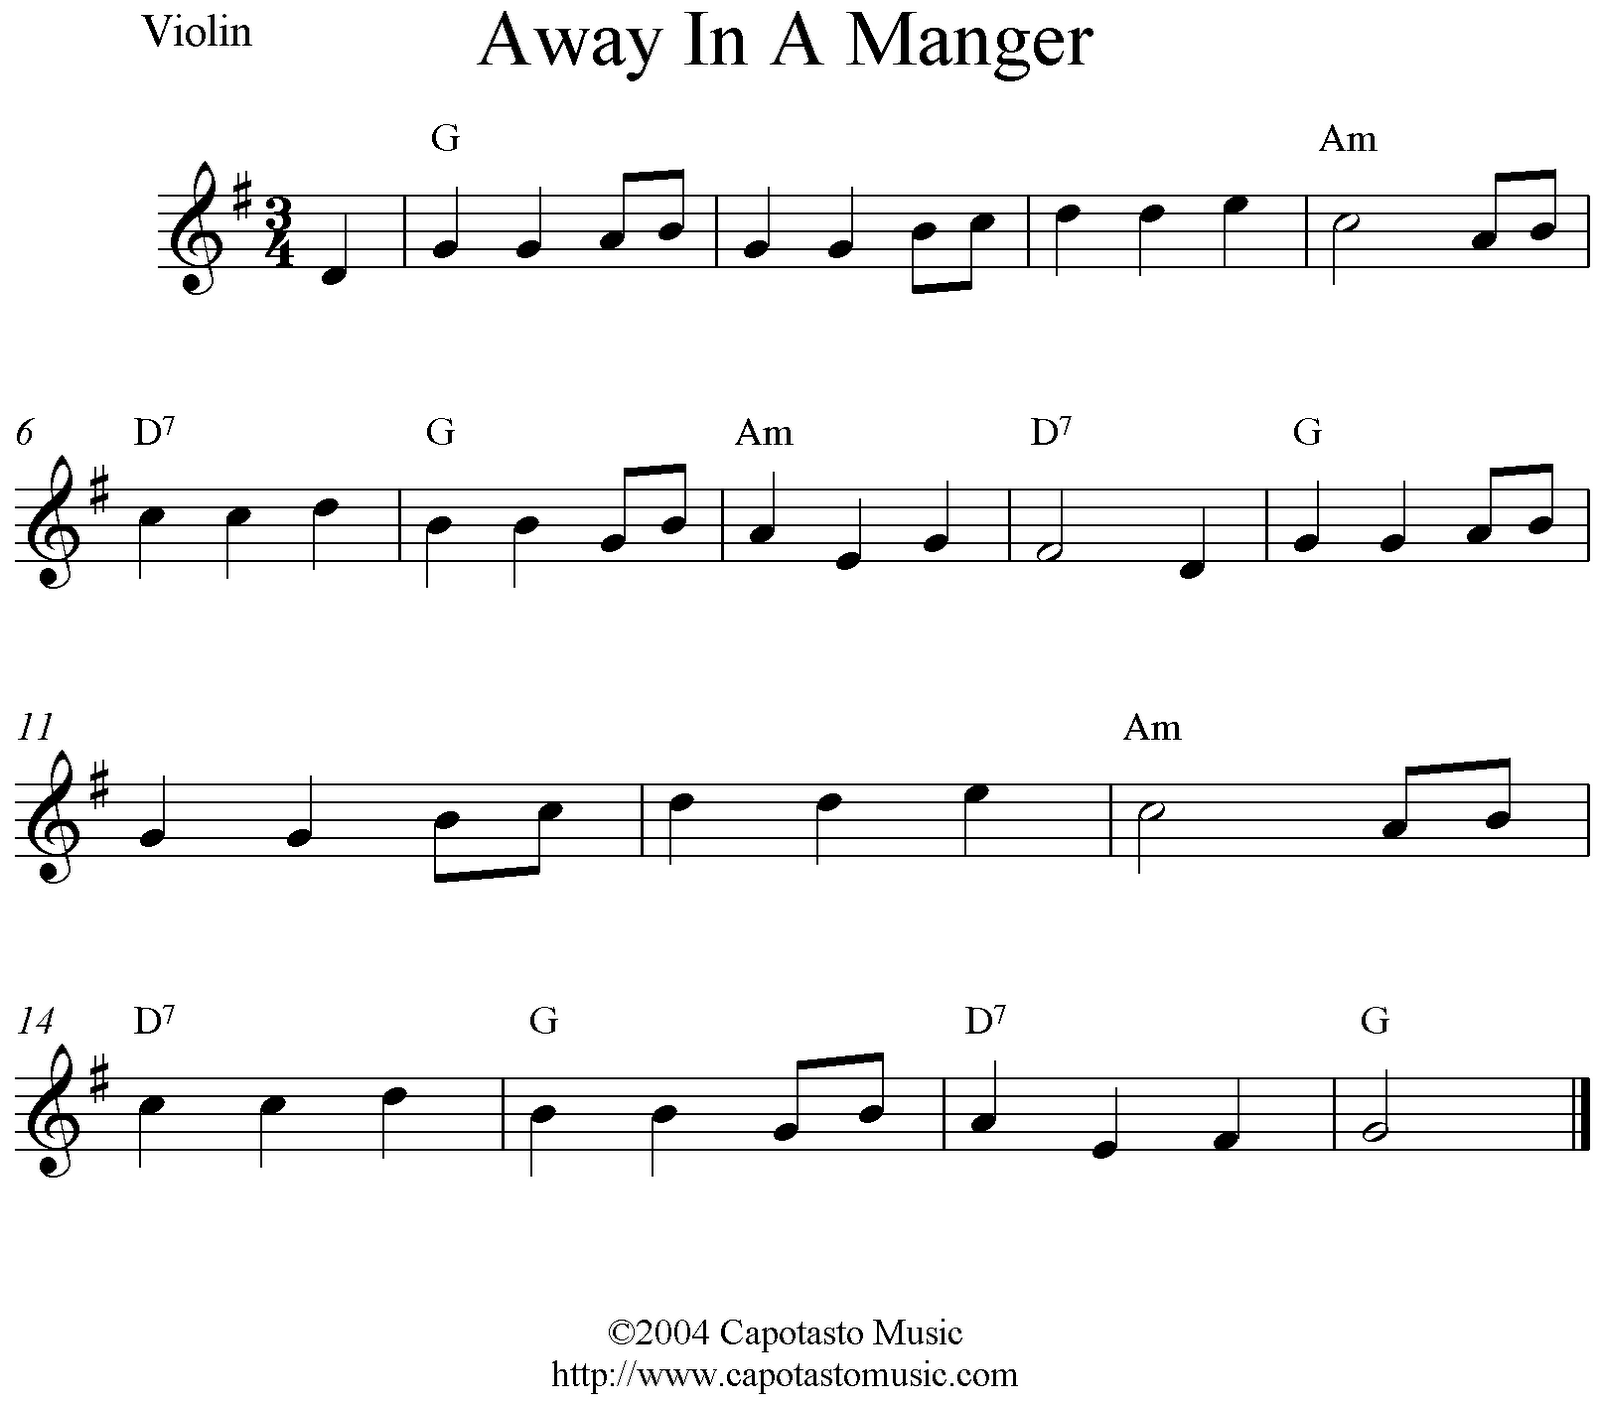 Violin Christmas Sheet Music Away In A Manger In The Key Of E